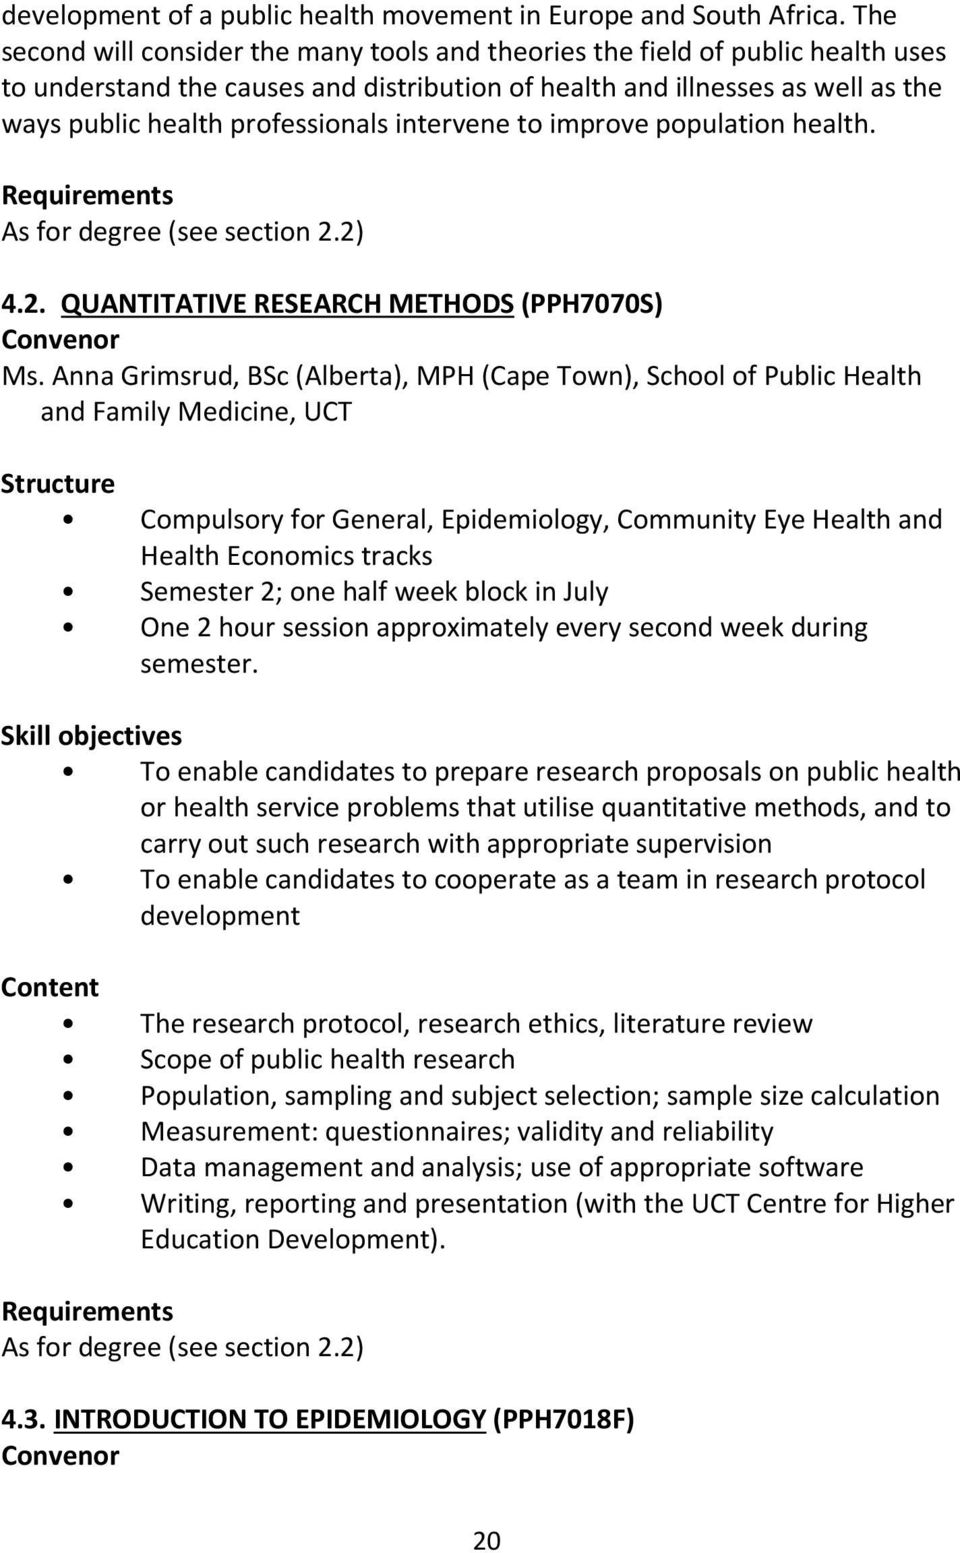 intervene to improve population health. Requirements As for degree (see section 2.2) 4.2. QUANTITATIVE RESEARCH METHODS (PPH7070S) Convenor Ms.